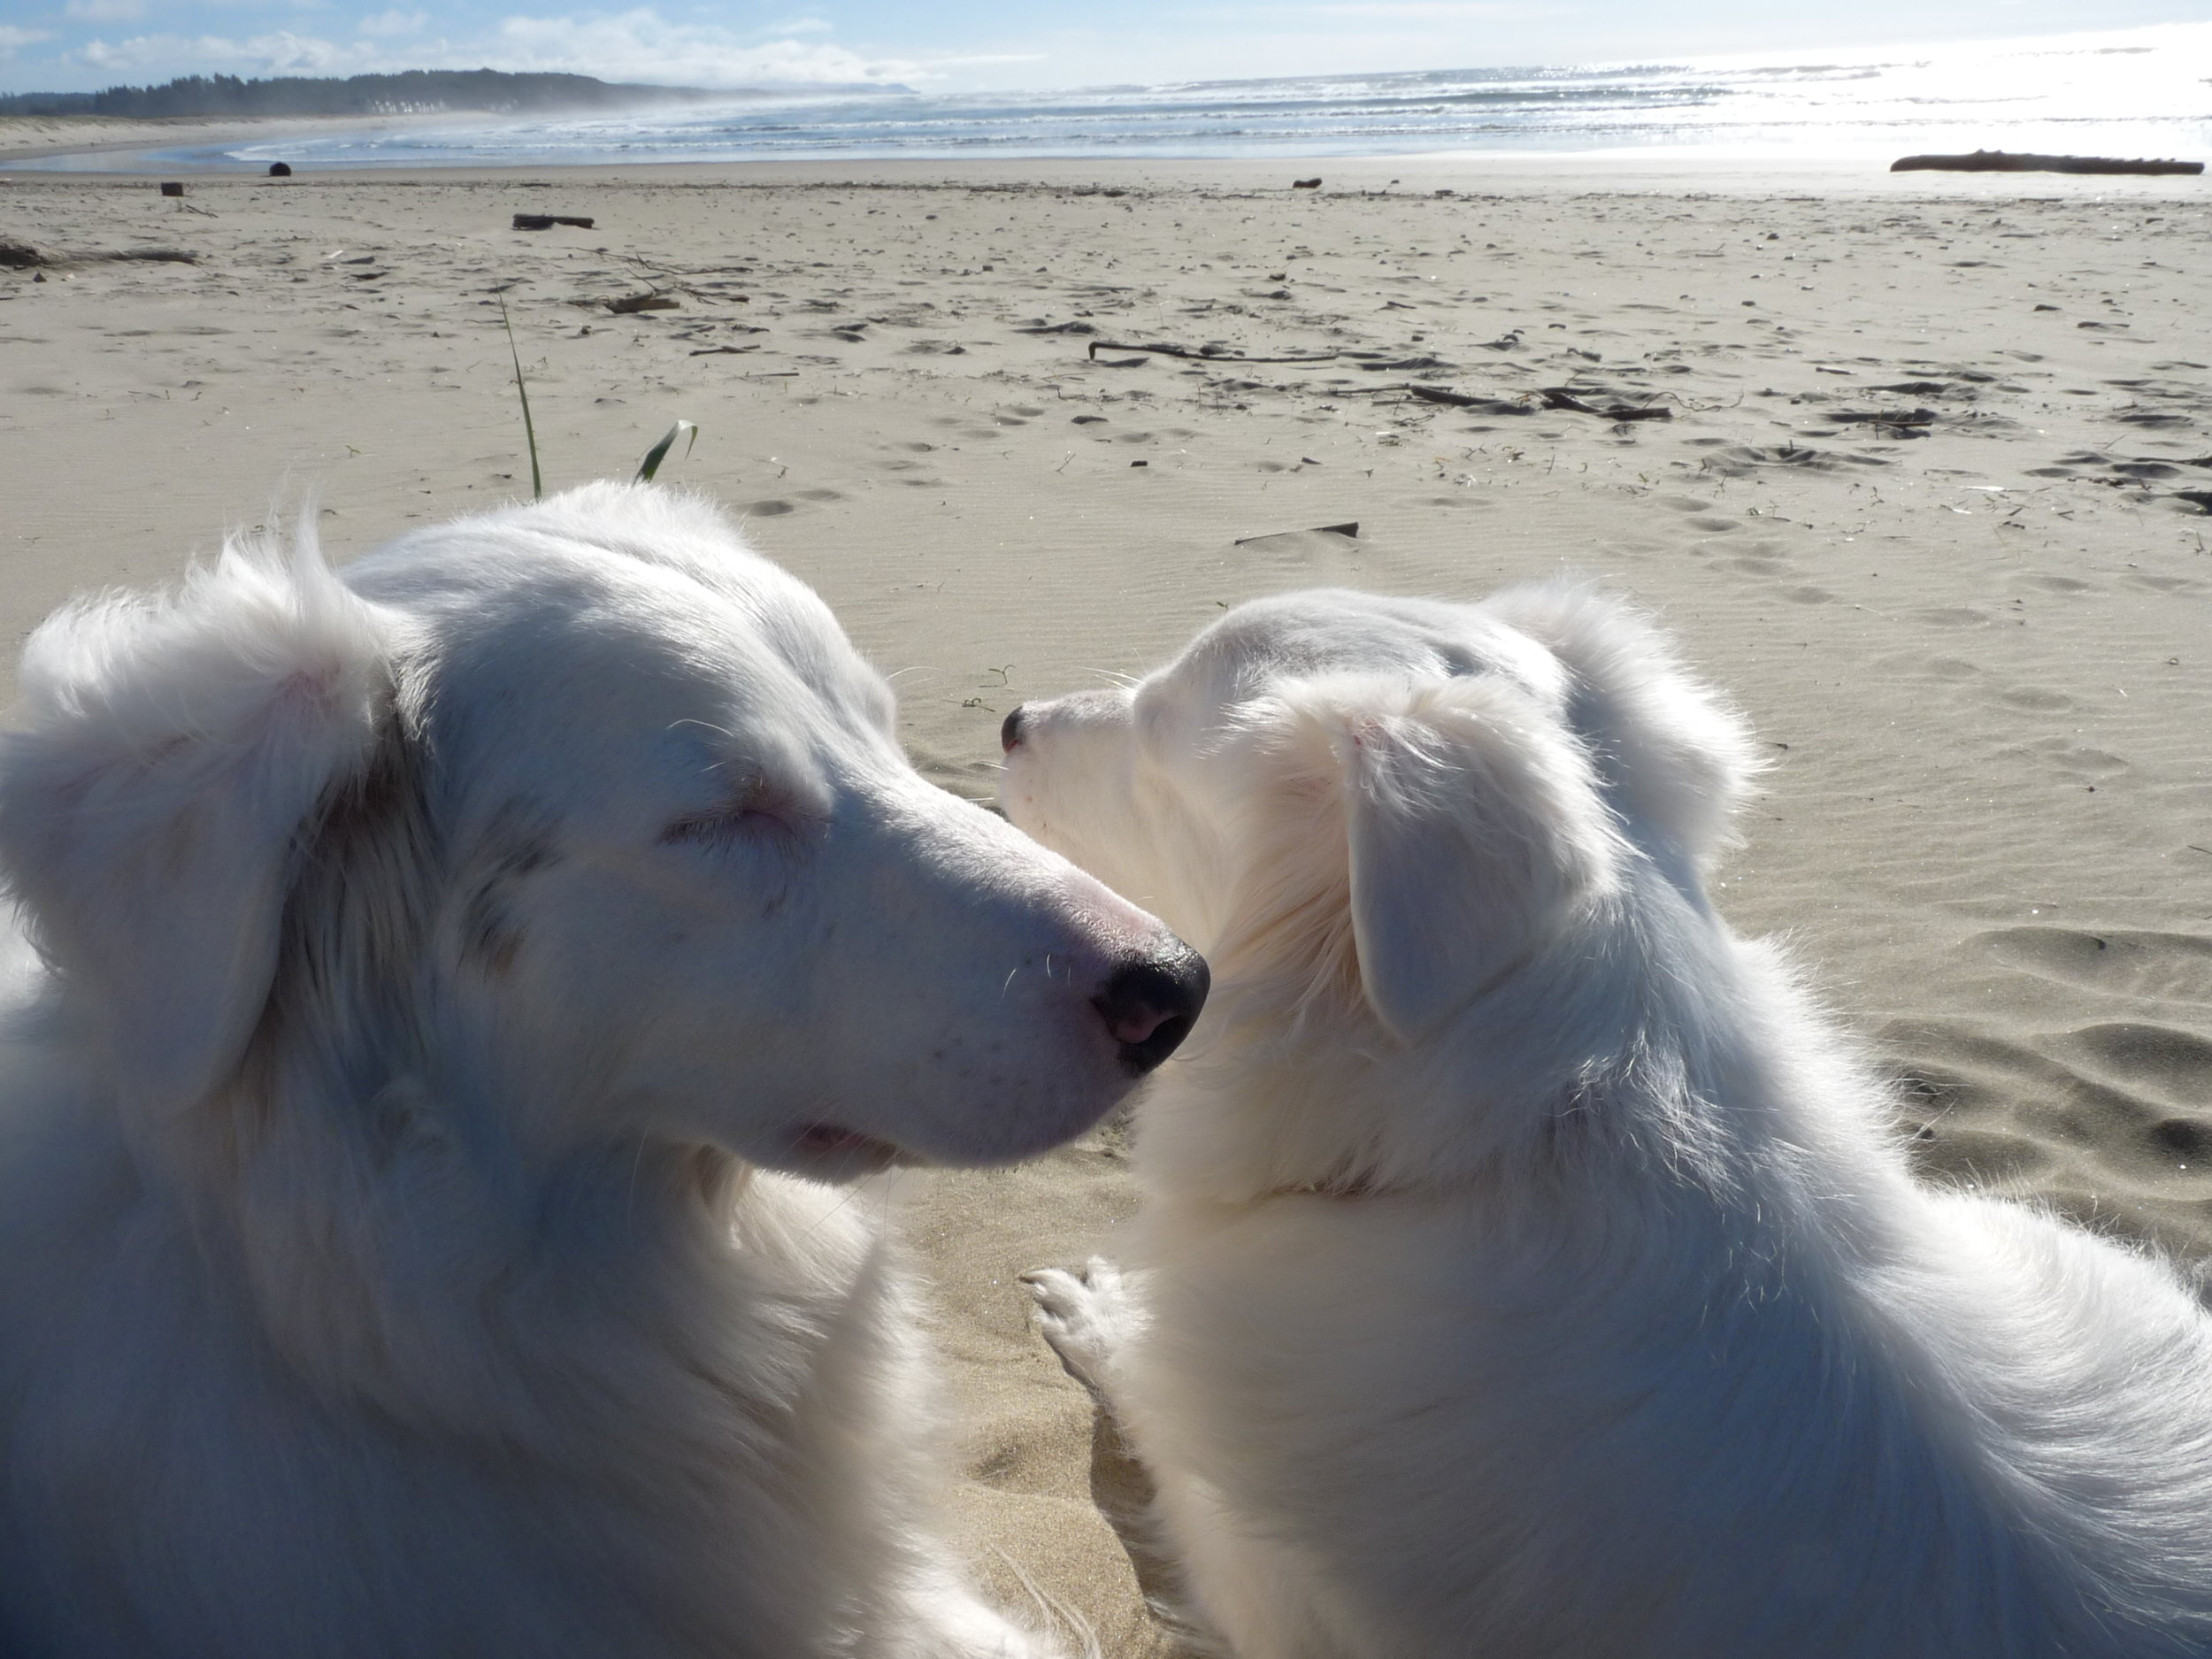 Another glorious day along the Oregon Coast near Newport in...February. Truly white dog weather.